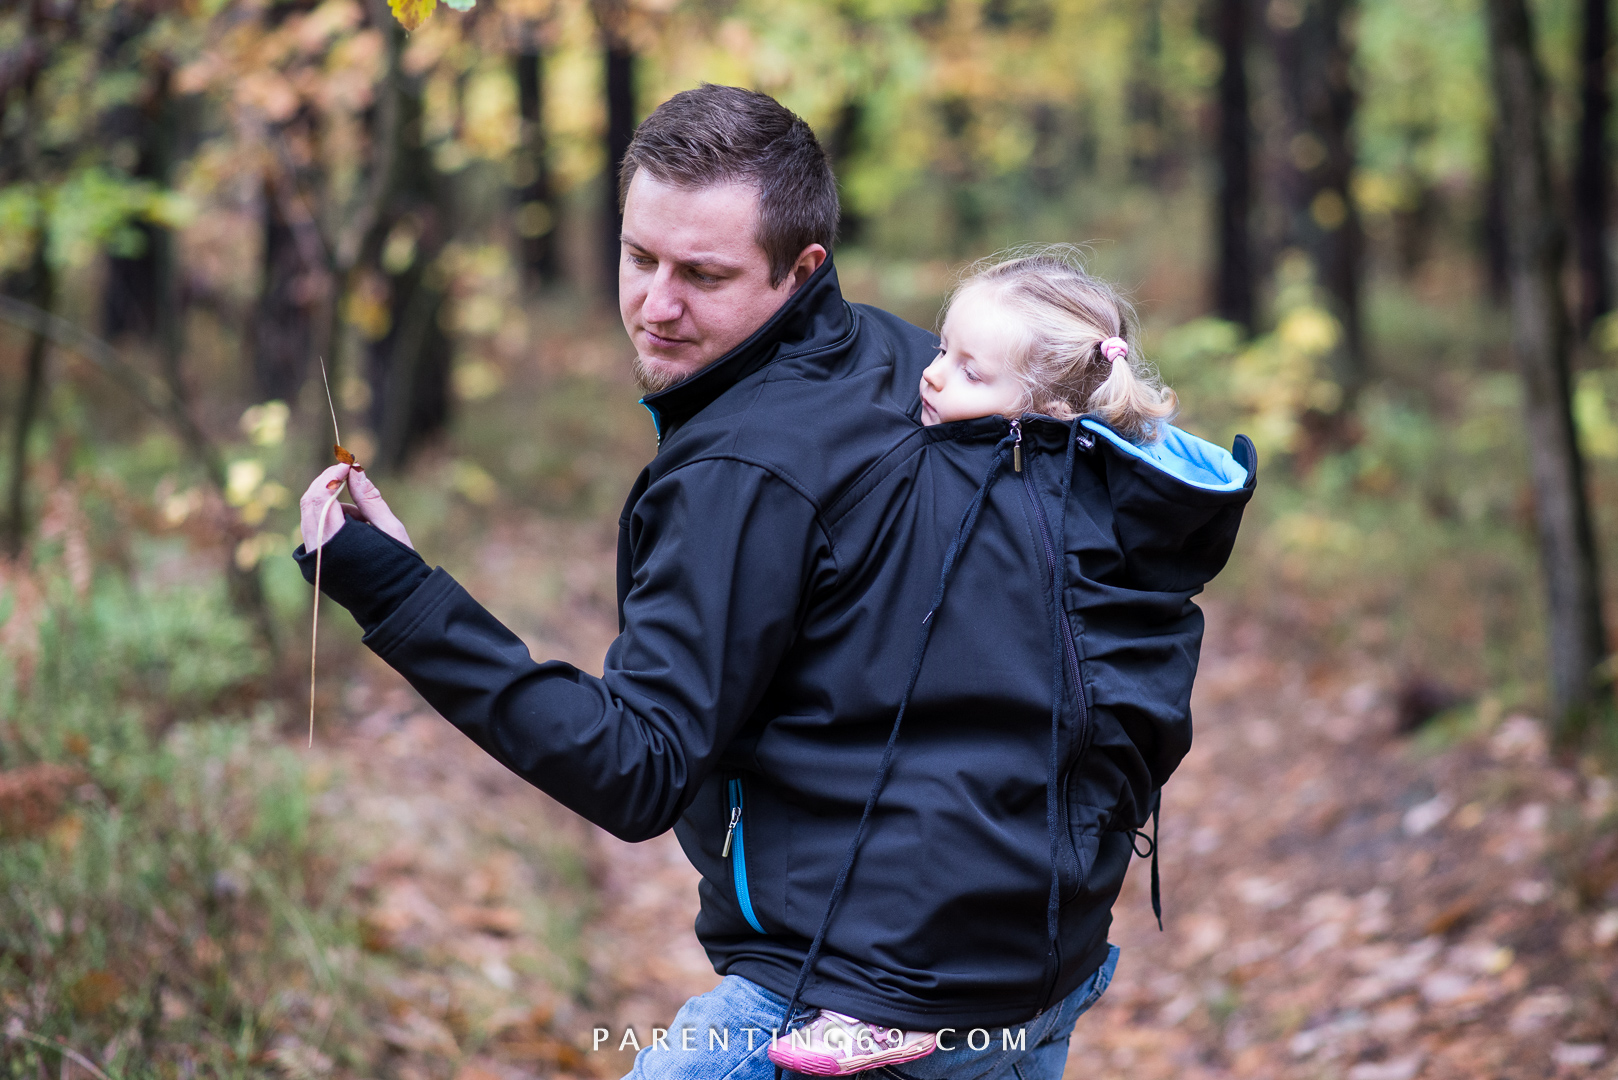 DSC_2302-twiga-babywearing-coat-clothes-for-men-black